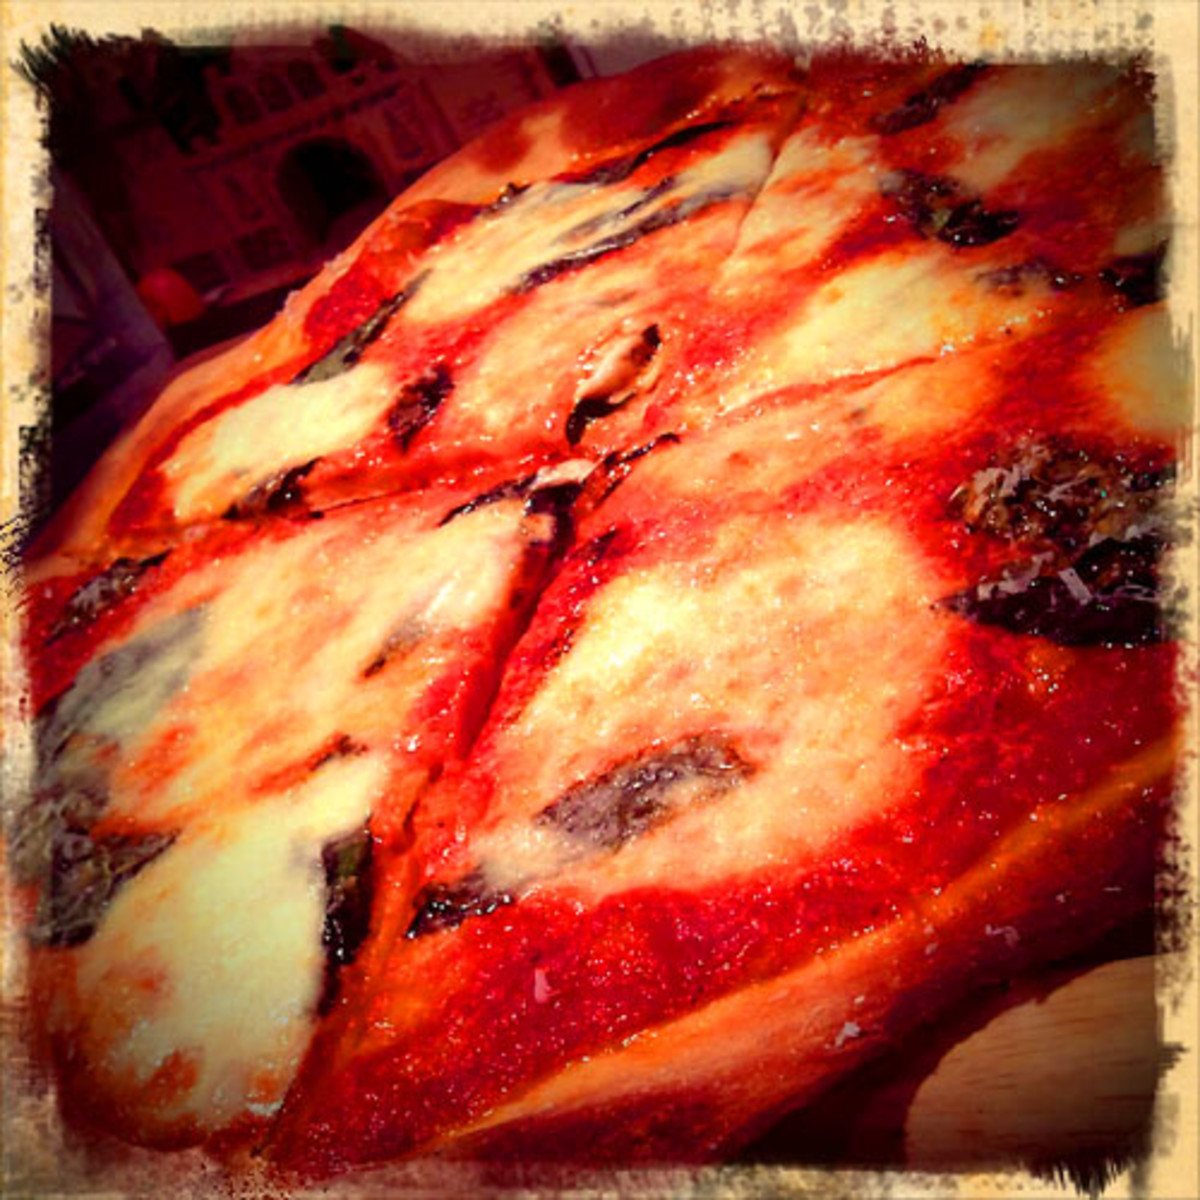 Extremely Loud and Incredibly Close_NY pizza pie classic